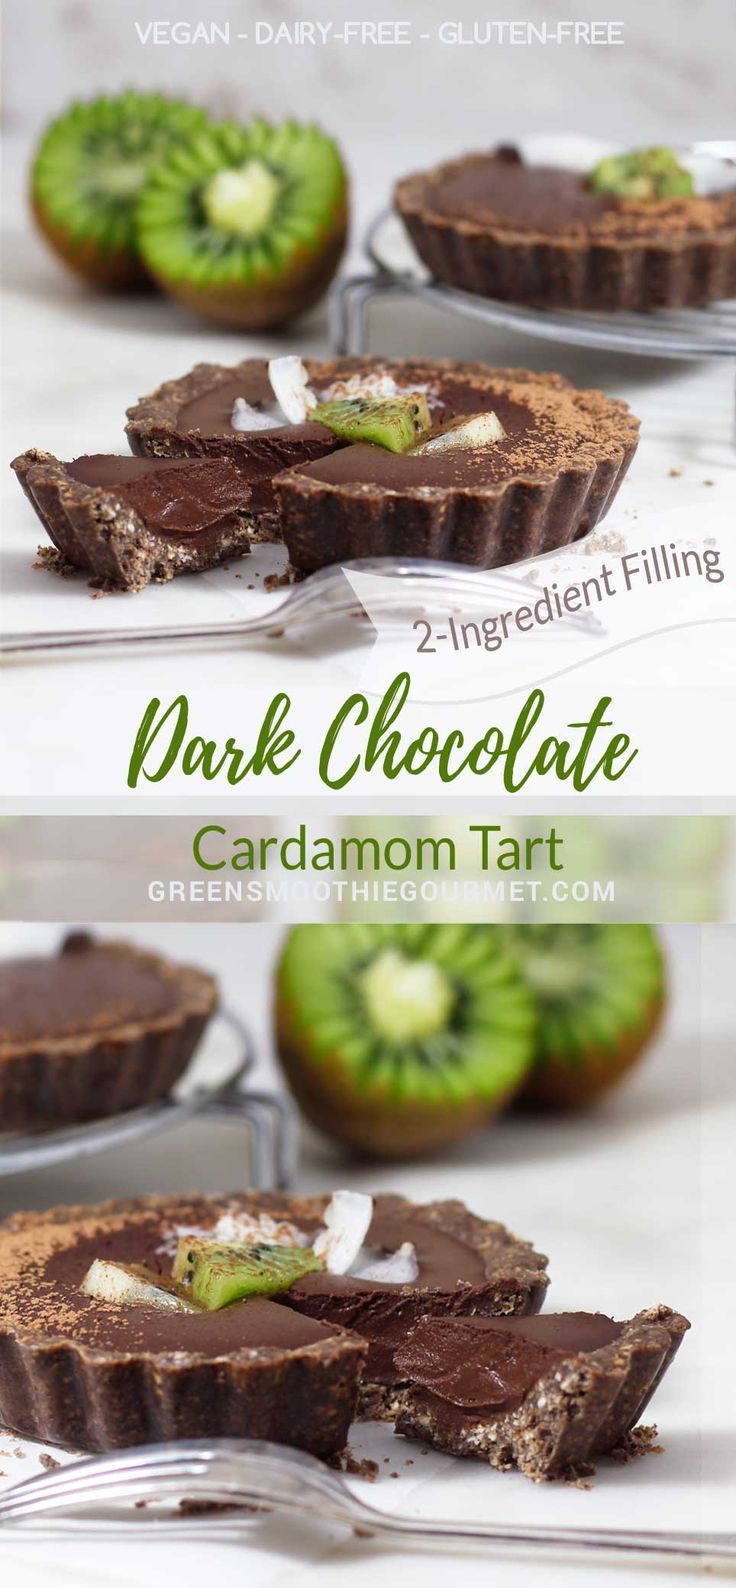 Dark Chocolate Cardamom No-Bake Tarts A rich vegan tart with a creamy 2-ingredient filling and a crust that tastes like a chocolate cookie #vegan #nobaketart #cardamom #chocolate